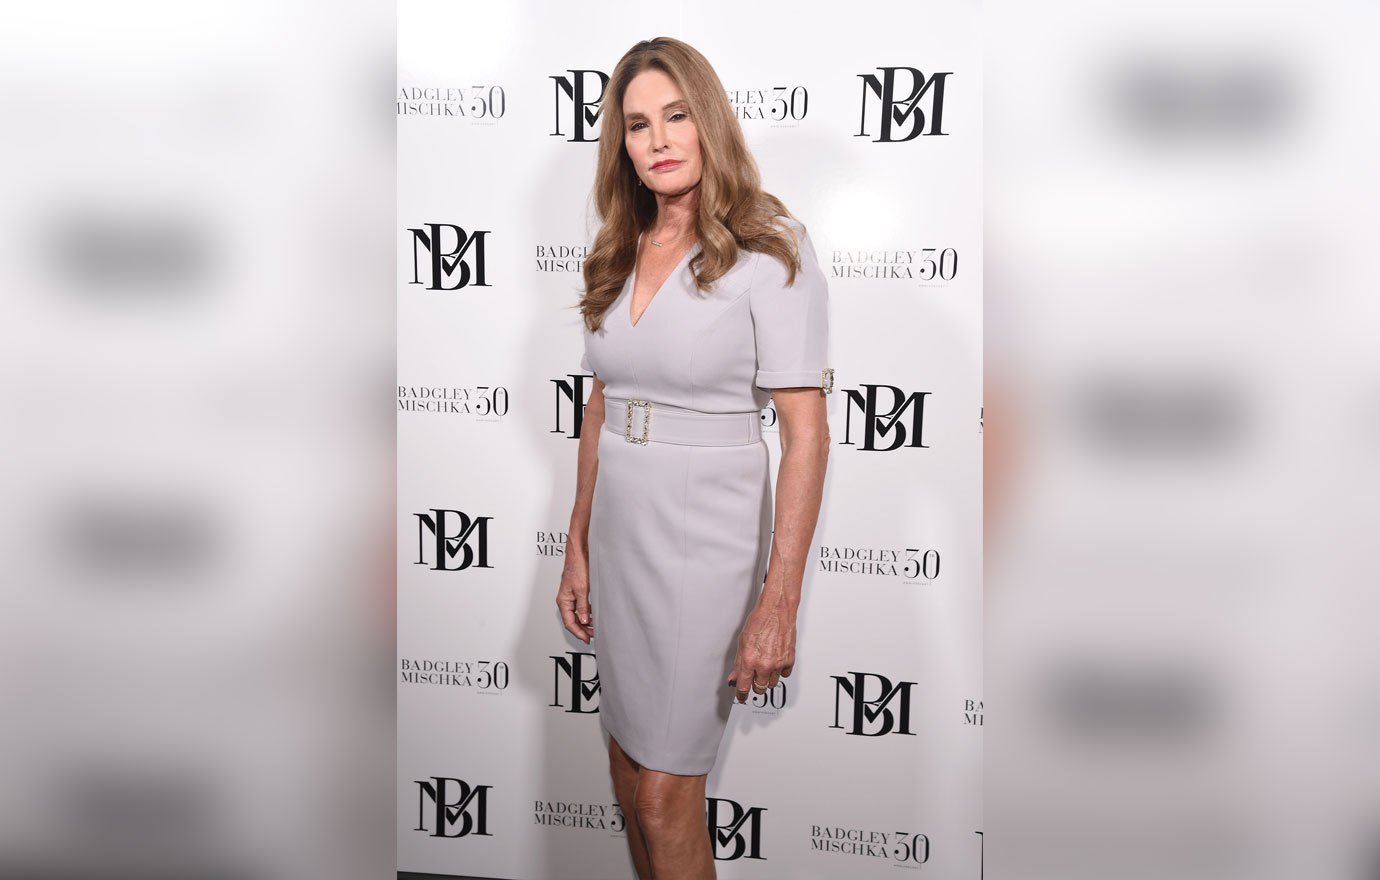 NEW YORK, NY - SEPTEMBER 08: Caitlyn Jenner poses backstage at the Badgley-Mischka Fashion Show during New York Fashion Week at Gallery I at Spring Studios on September 8, 2018 in New York City. (Photo by Gary Gershoff/WireImage)